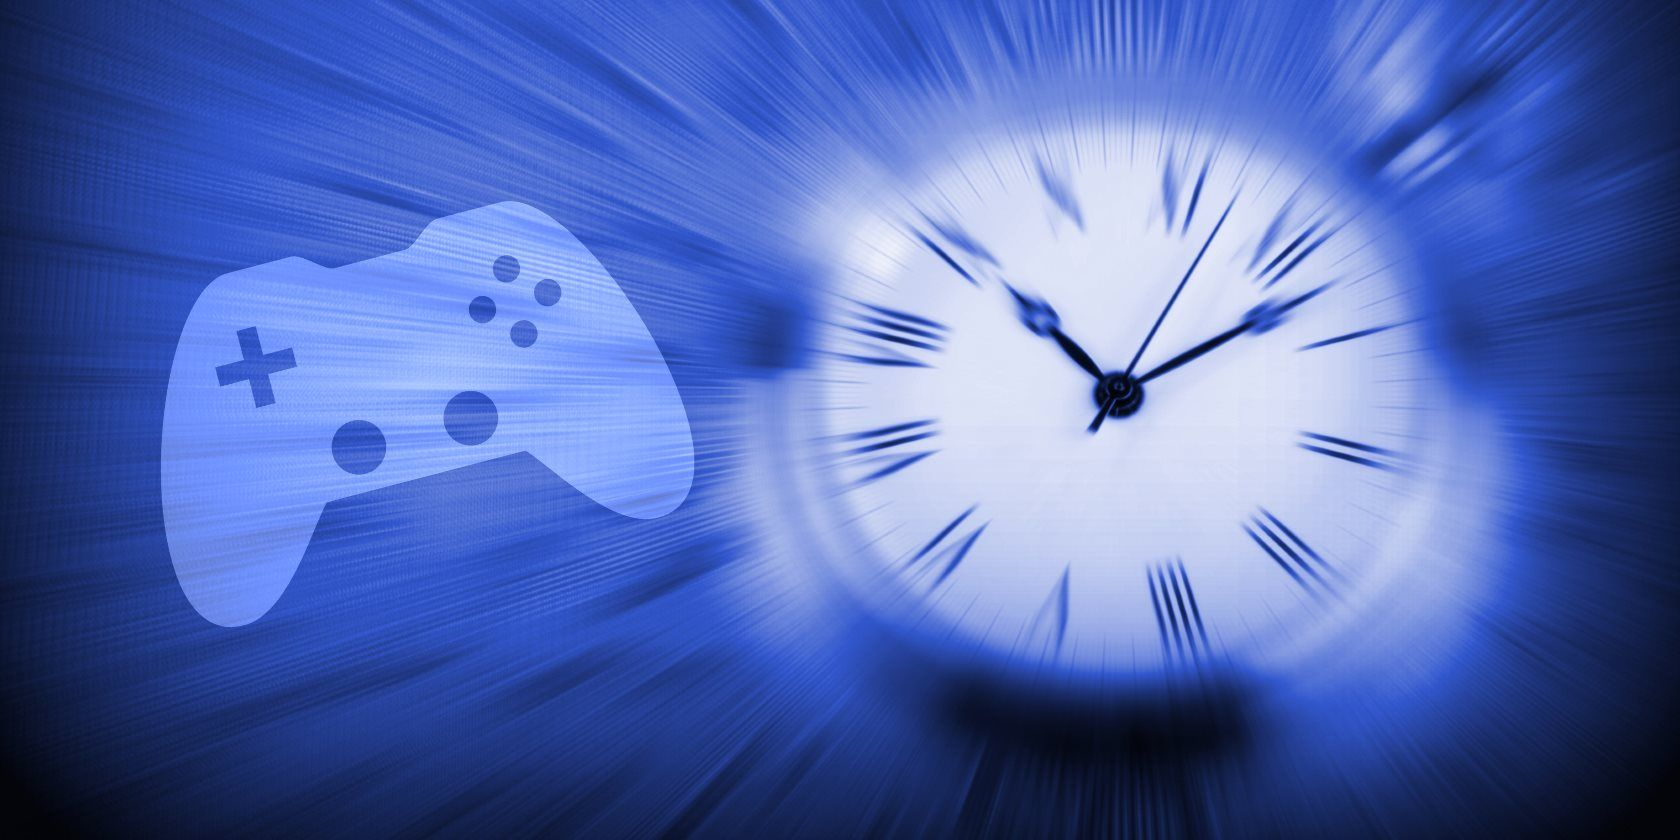 10 Time Traveling Video Games to Explore Past and Future